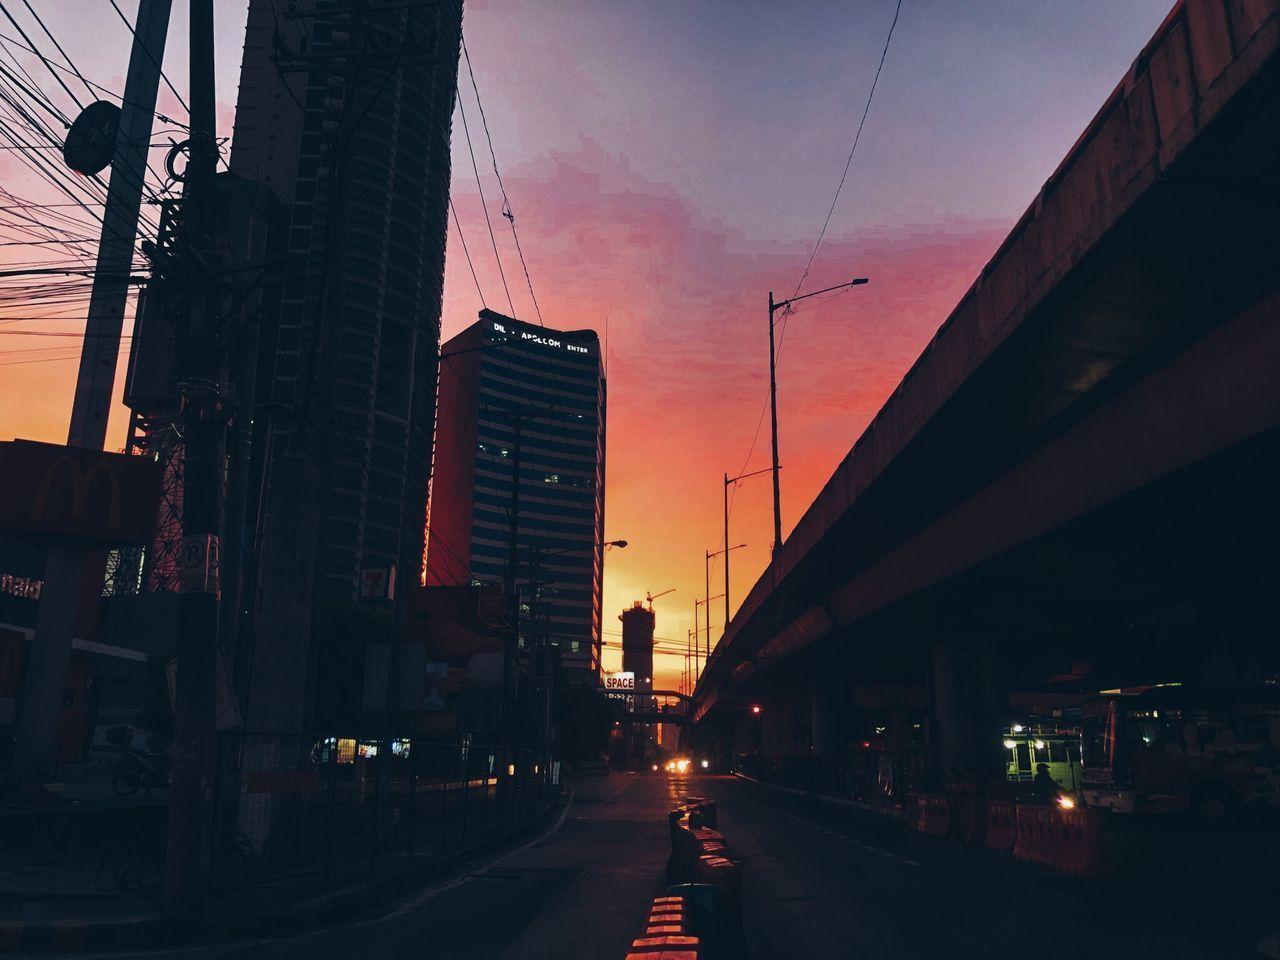 ROAD BY BUILDINGS AGAINST SKY AT SUNSET